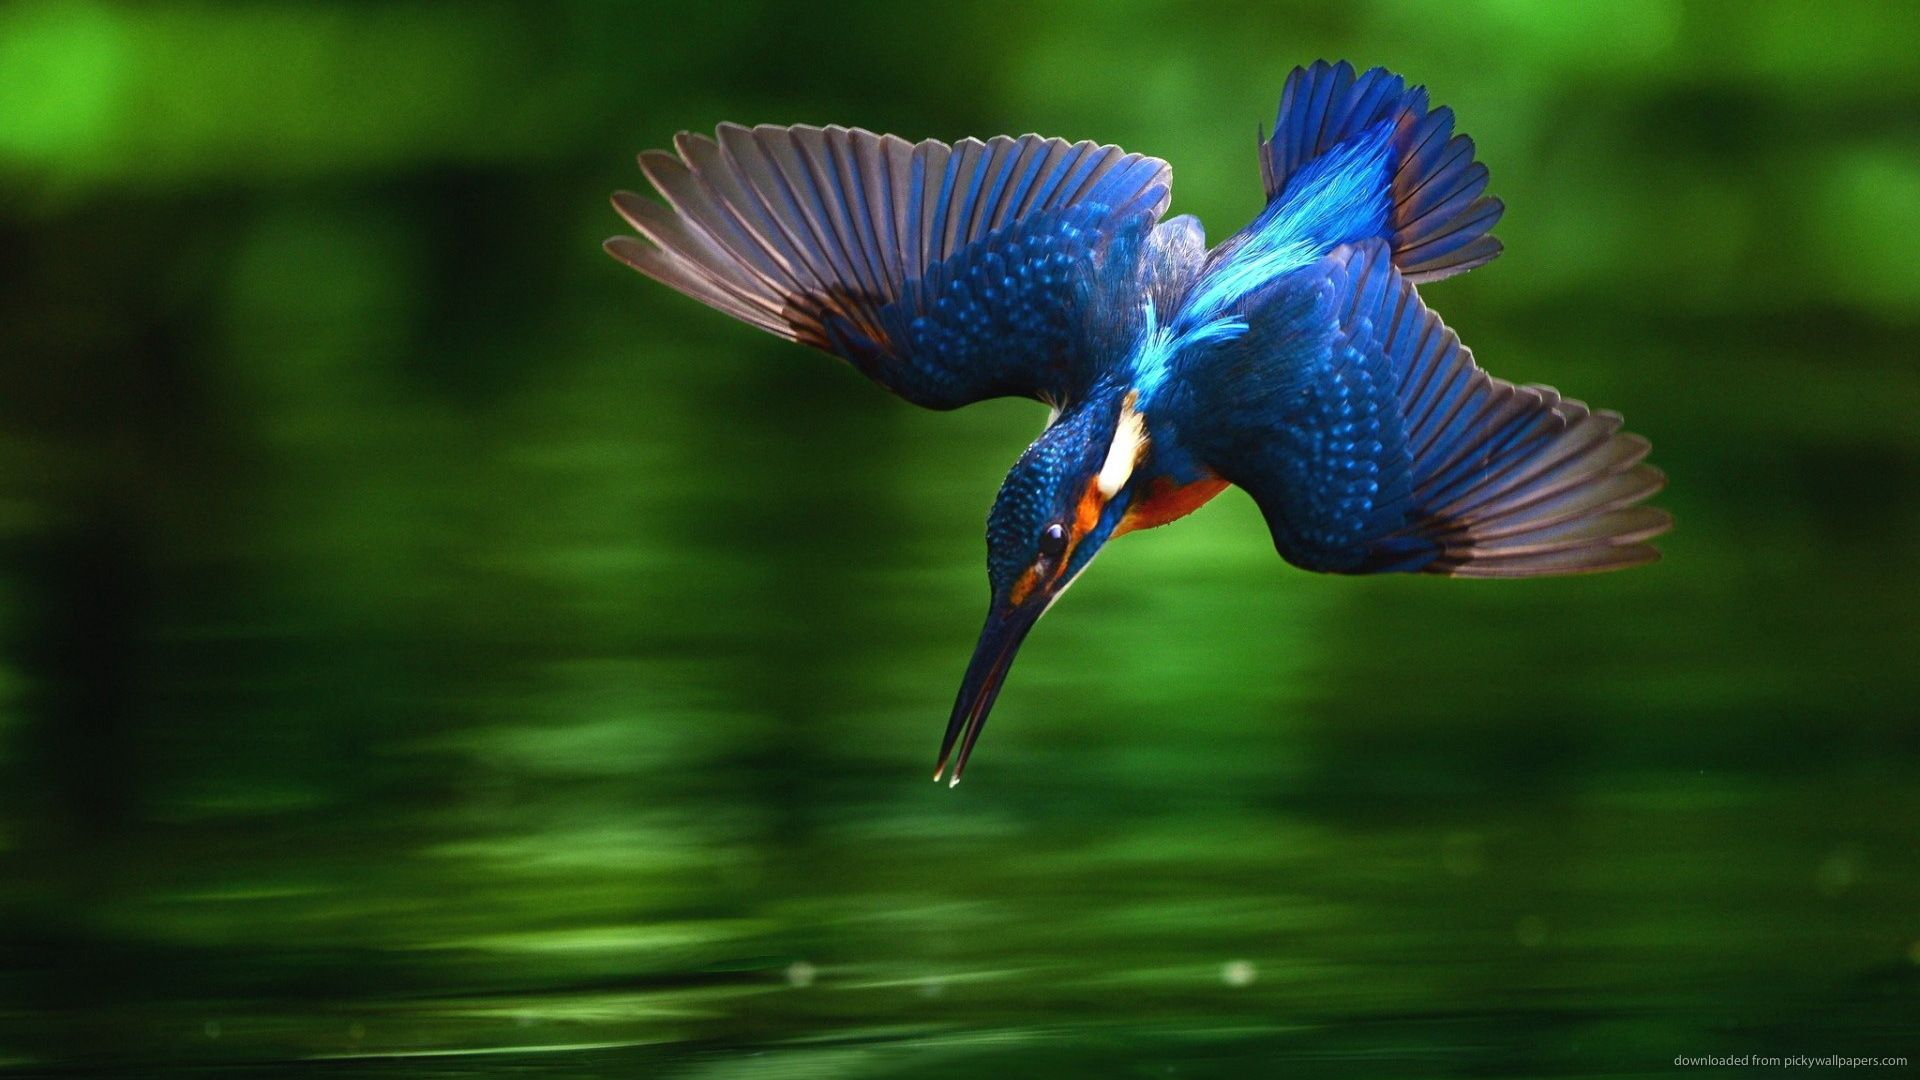 Kingfisher Bird Diving Into Water Wallpaper Picture